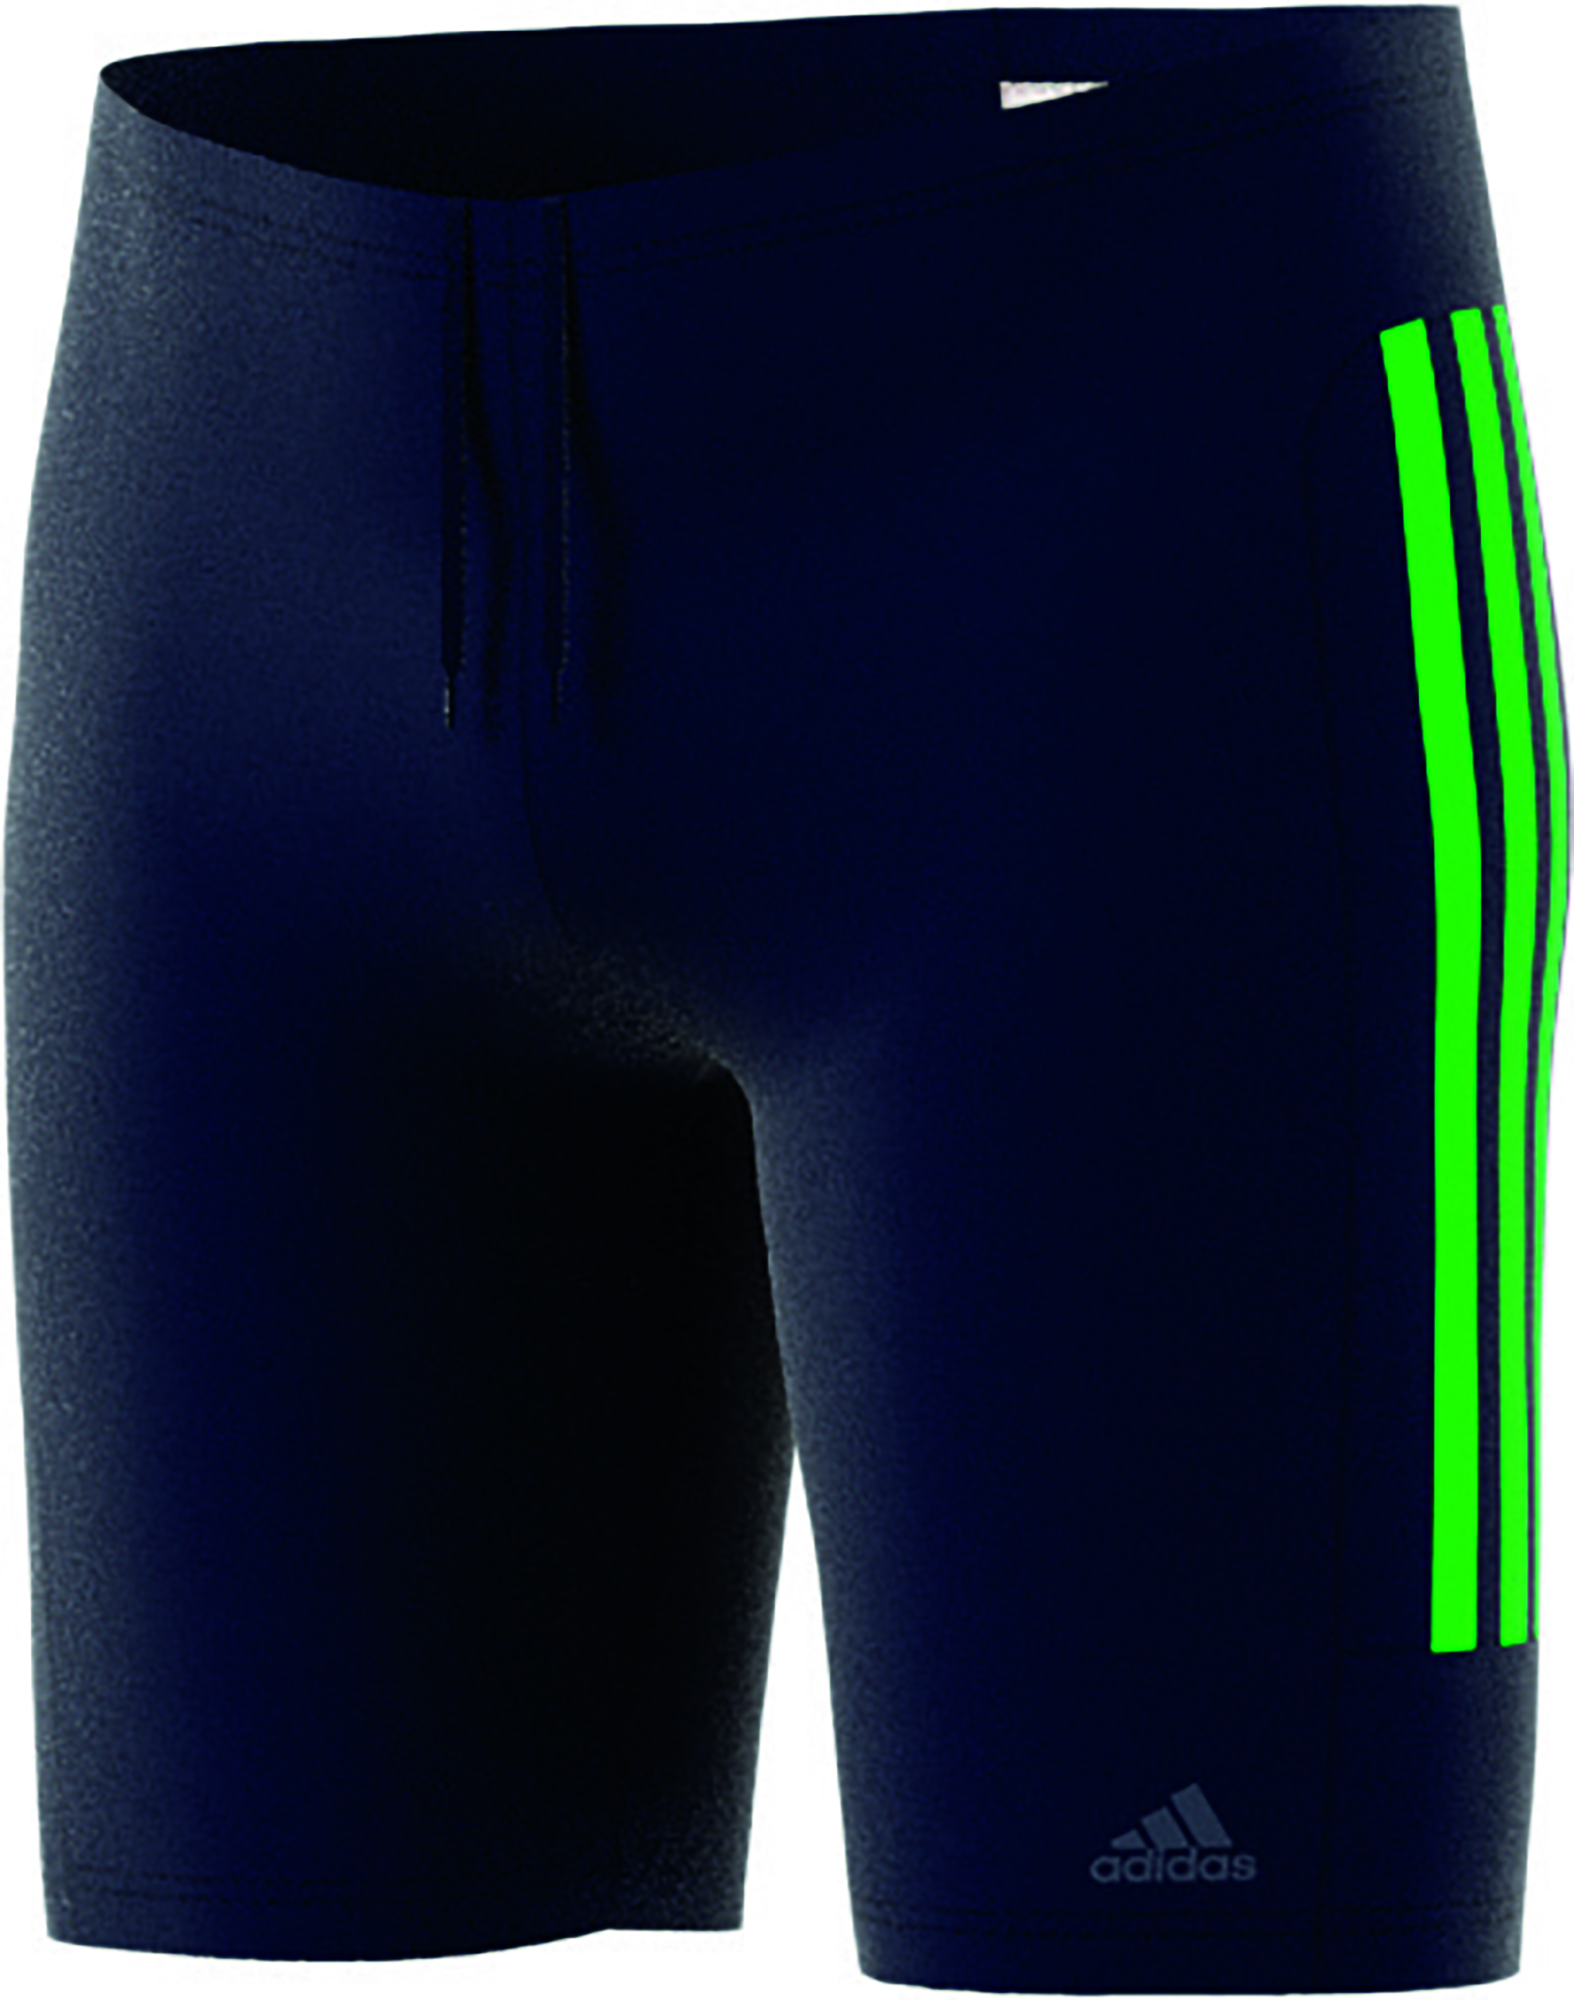 | adidas Infinitex Essence Core 3 Stripes longleg